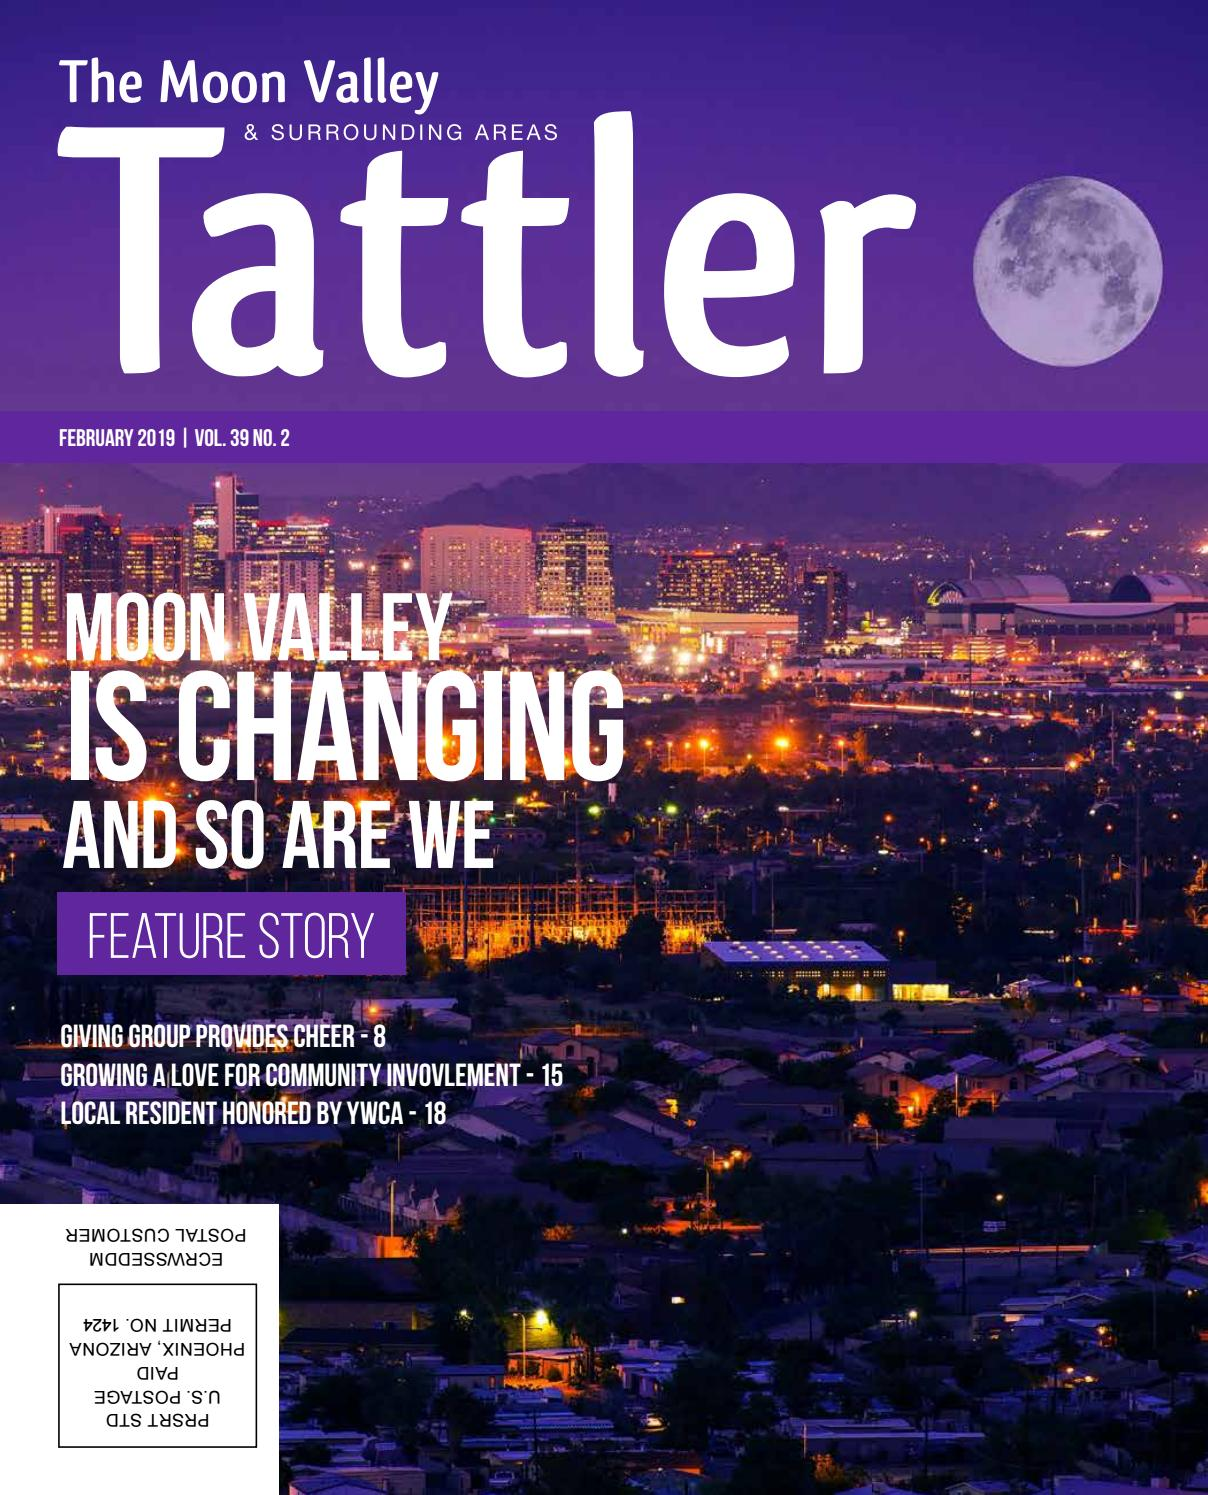 The New Moon Valley Tattler February 2019 By Moon Valley